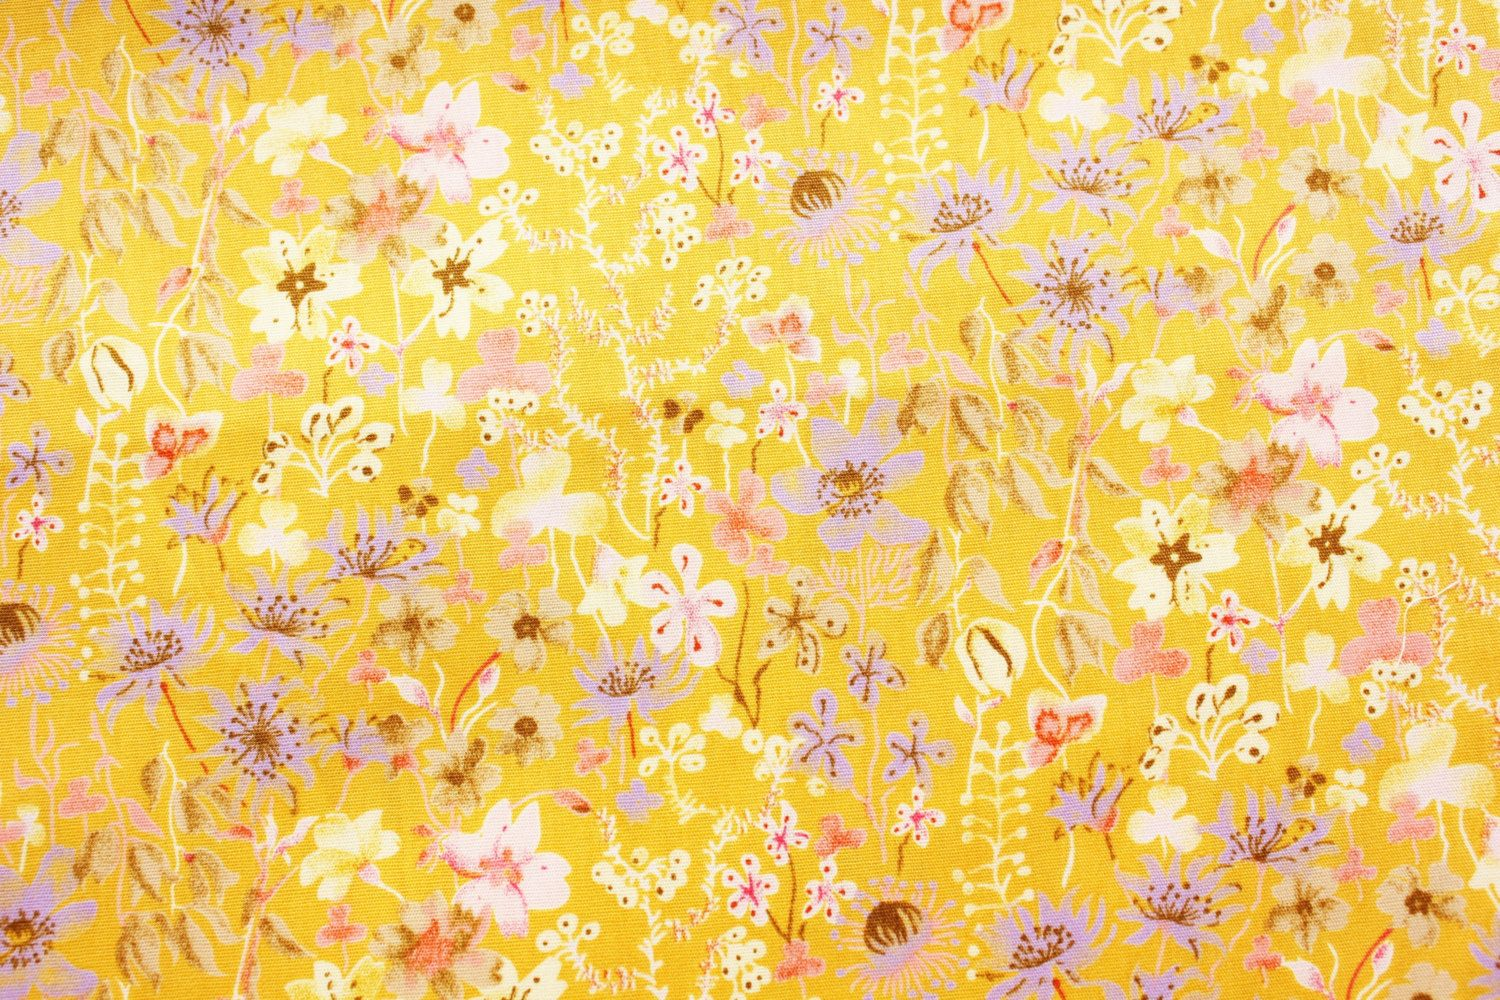 Floral Fabric, Cotton Fabric, Quilting Fabric, Modern design, Mustard Yellow, Sewing, Material, Supplies, Half Metre by TwoChubbyRabbits on Etsy